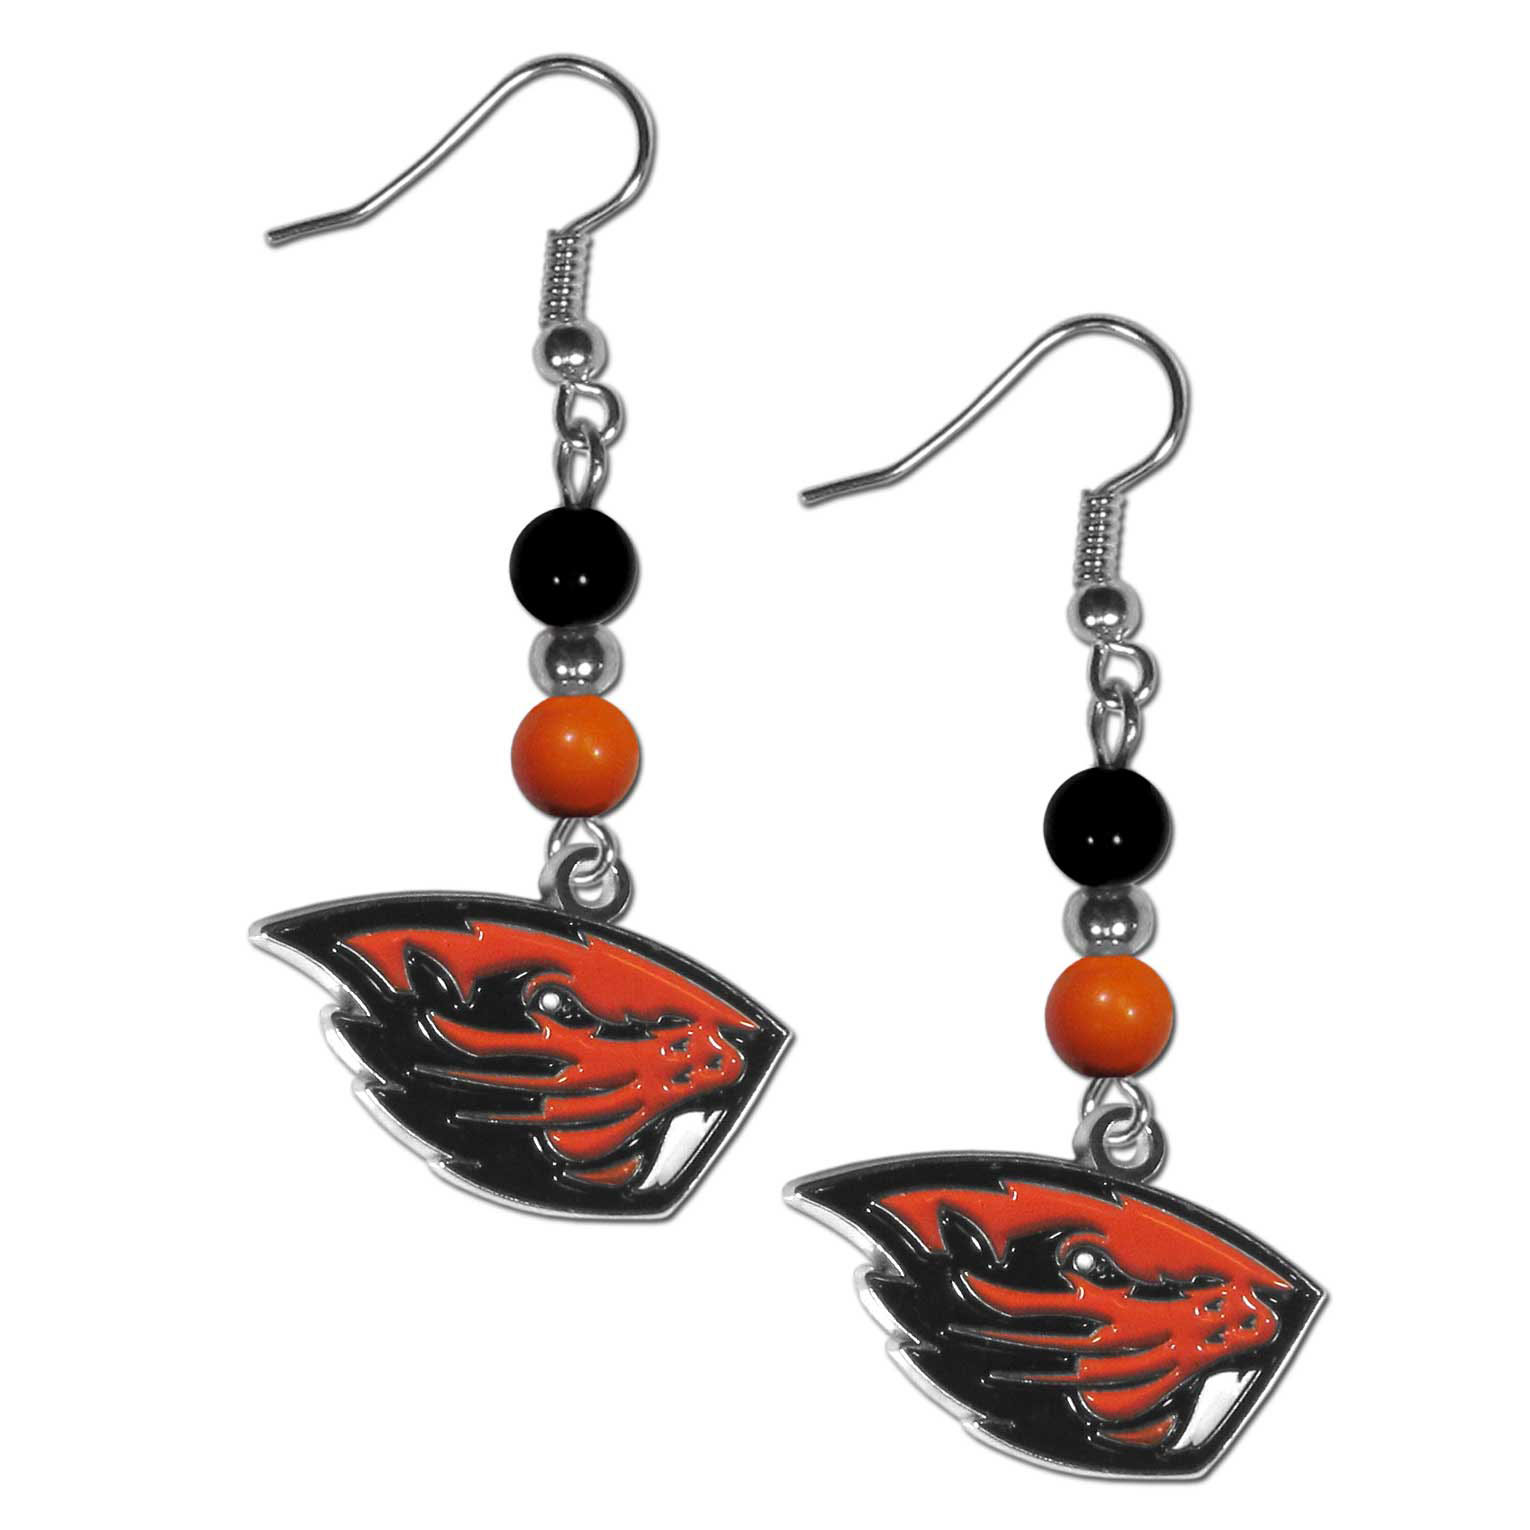 Oregon St. Beavers Fan Bead Dangle Earrings - Love your team, show it off with our Oregon St. Beavers bead dangle earrings! These super cute earrings hang approximately 2 inches and features 2 team colored beads and a high polish team charm. A must have for game day!